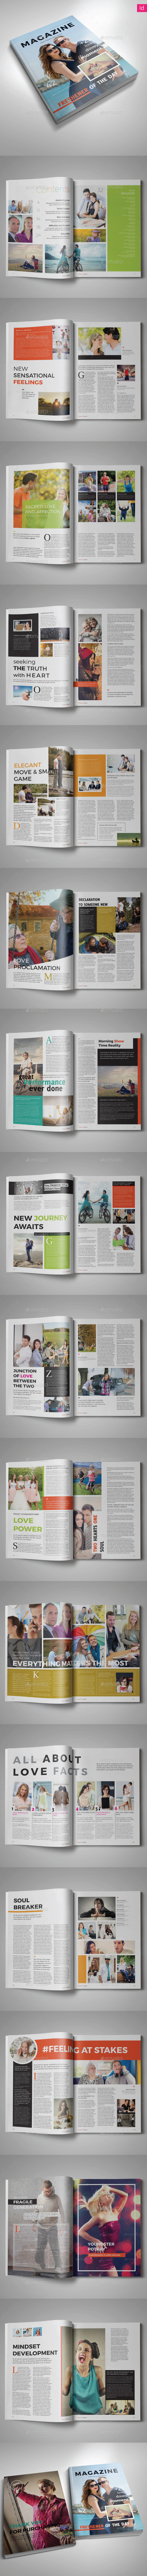 Magazine Template | Issue 16 - Magazines Print Templates